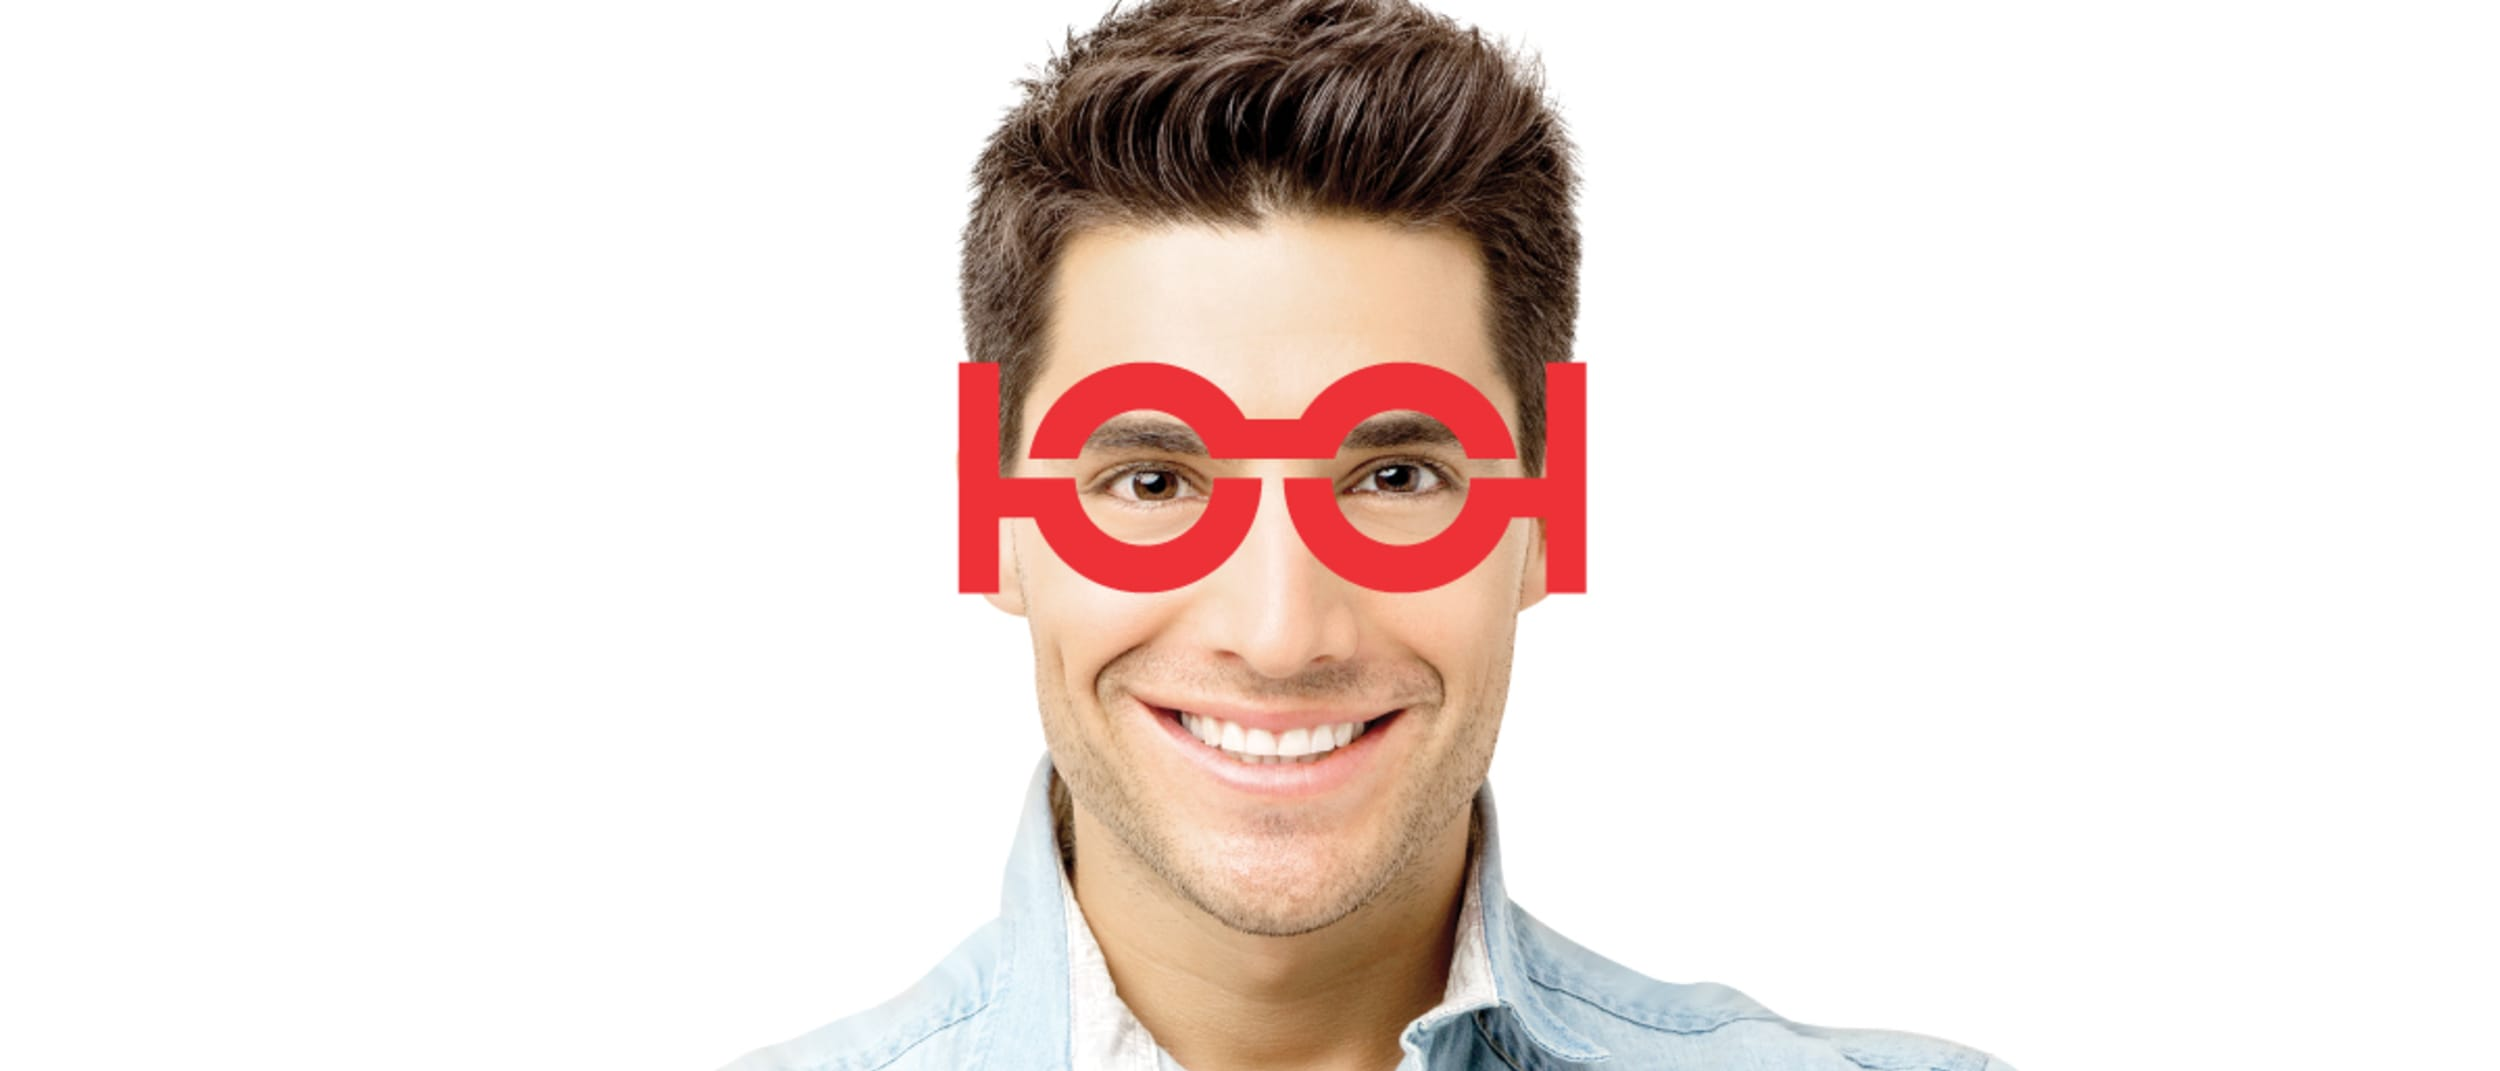 1001 Optical: 30% off storewide